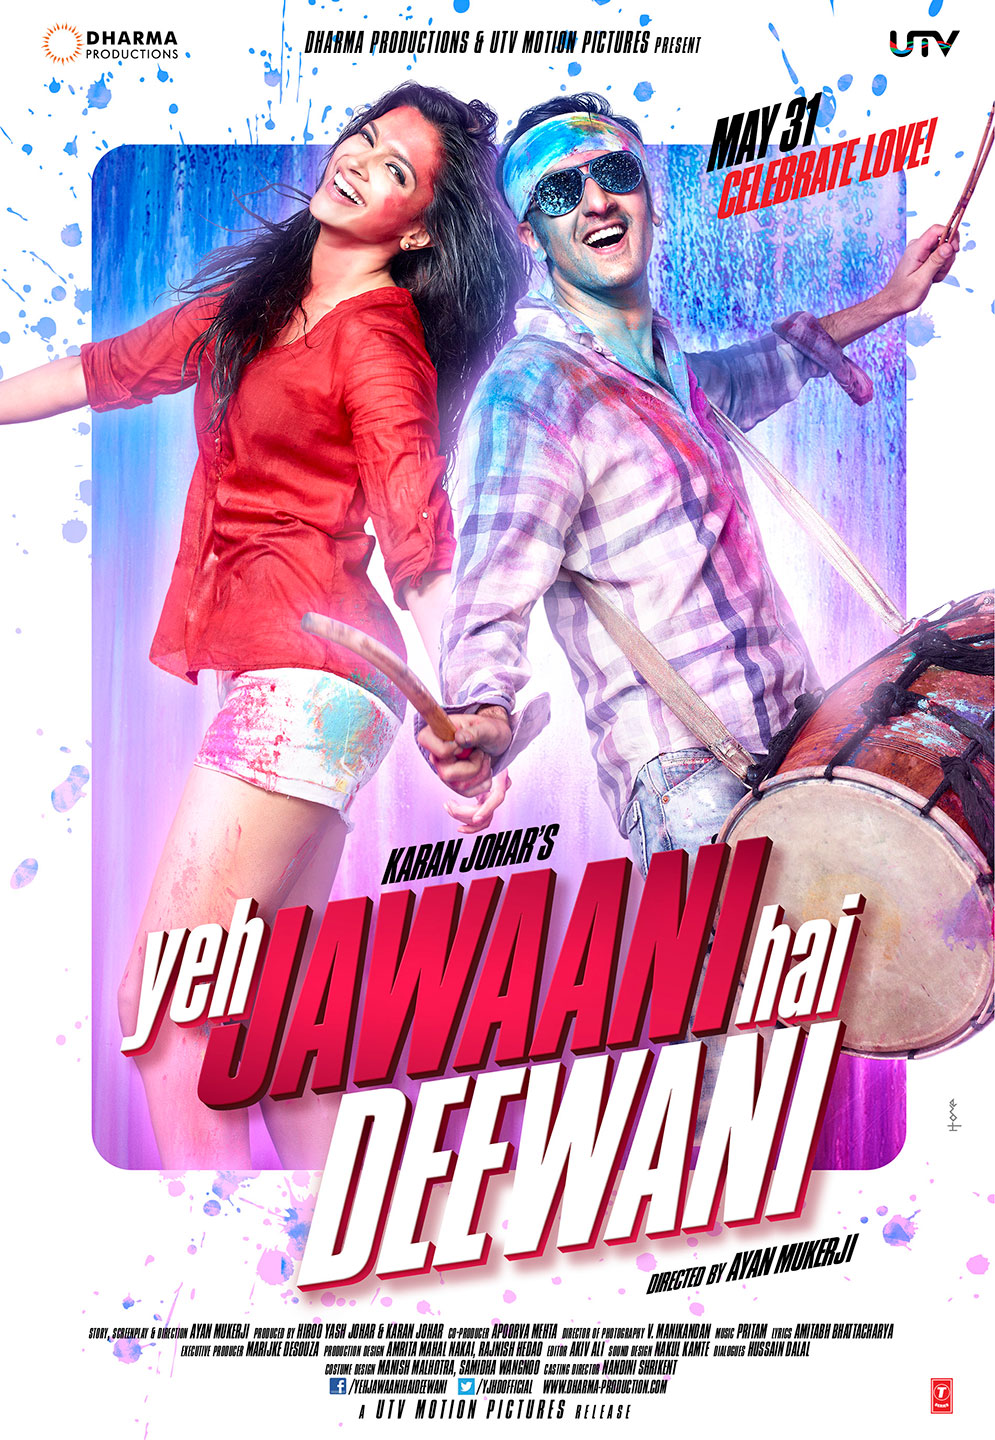 Poster 2 Yeh Jawaani Hai Deewani is the Love Story of Today!